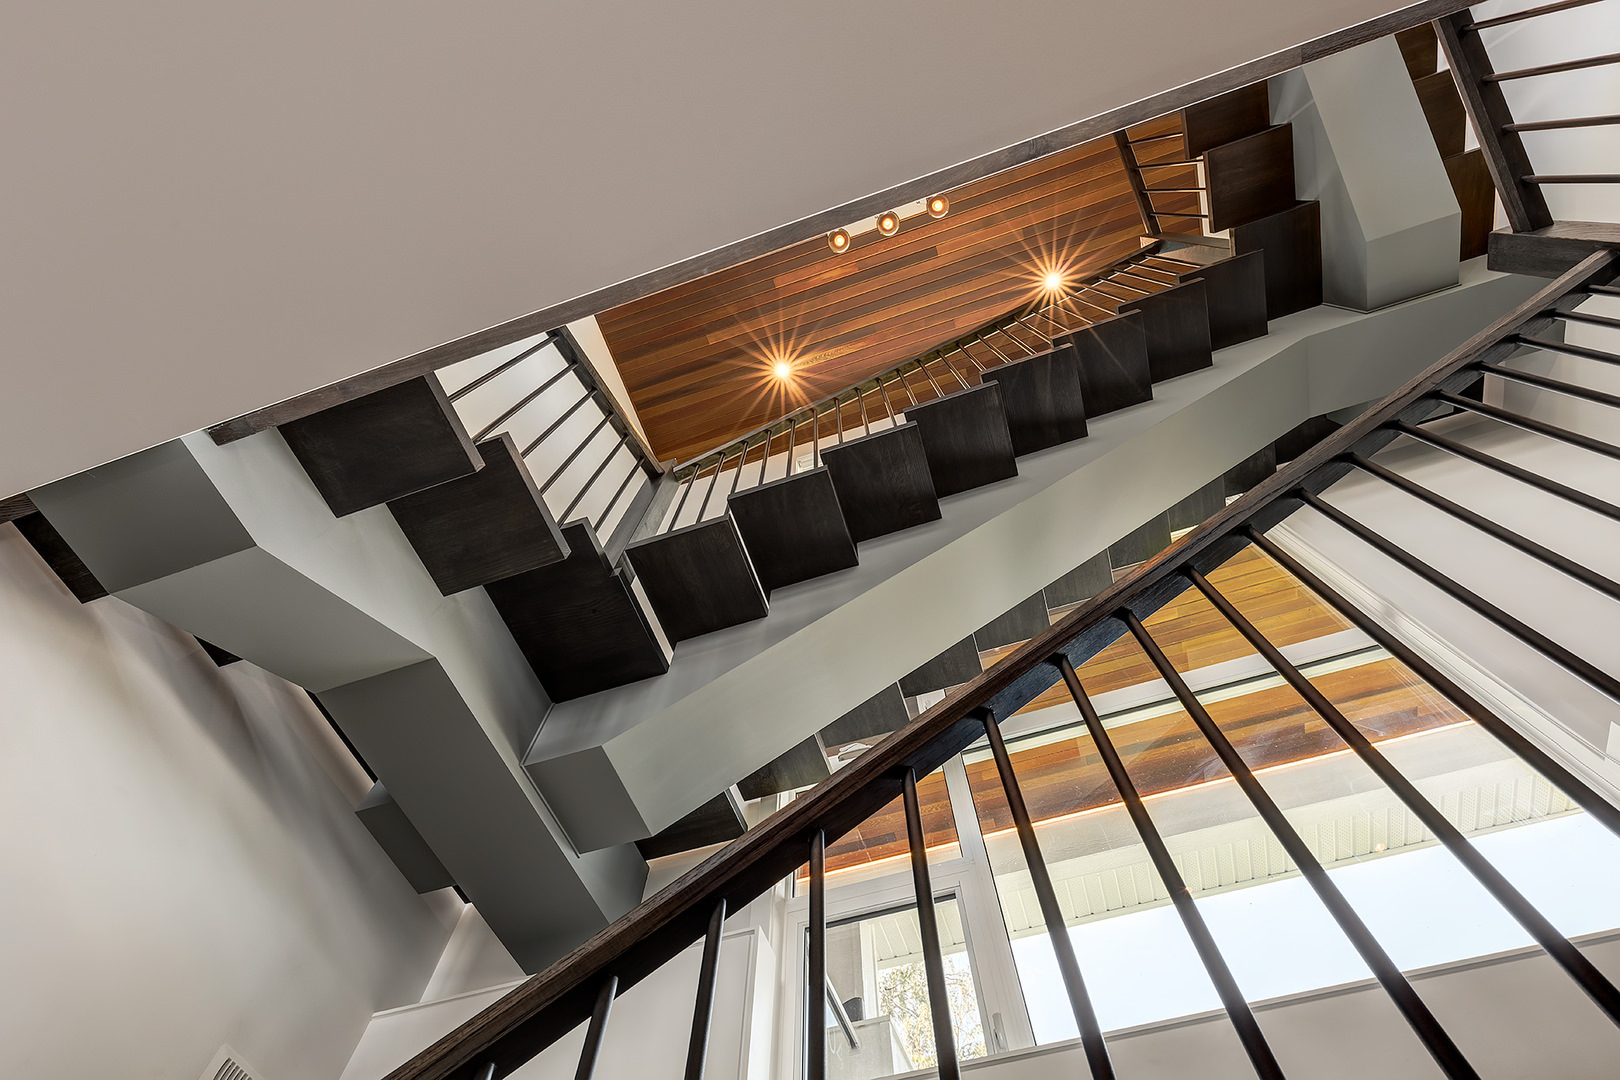 This is the view of the staircase from the lower level seeing it crawling on the side walls up to the second floor. The ceiling is made with a wooden texture.